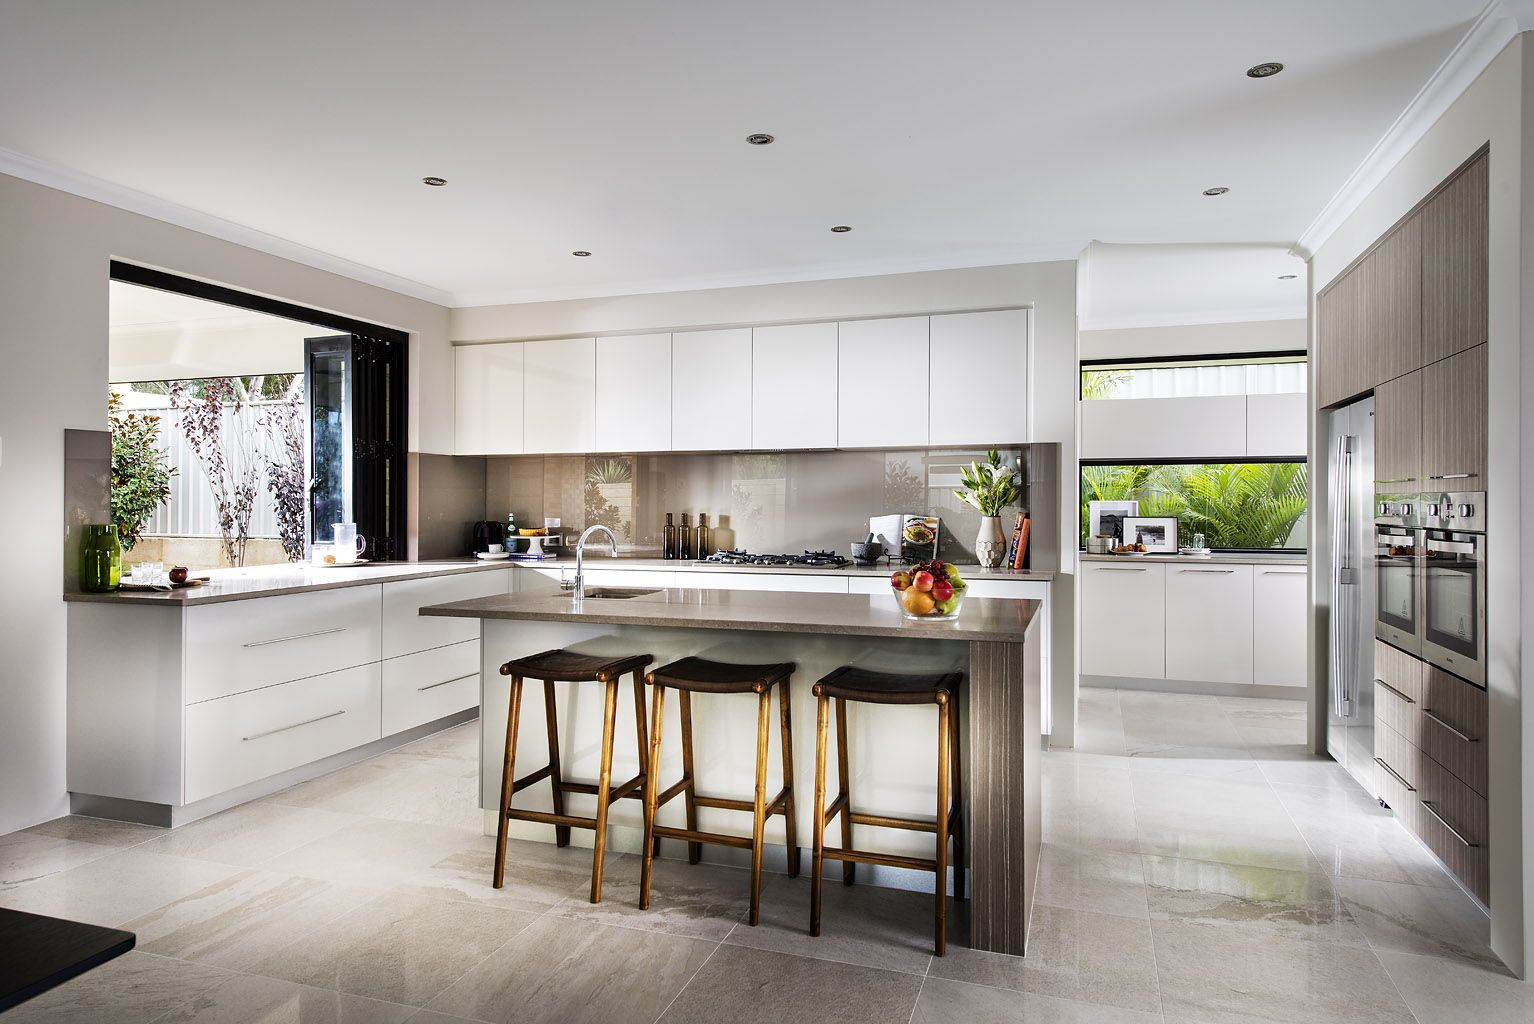 nine kitchen dale alcock kitchen with scullery - love the bifold